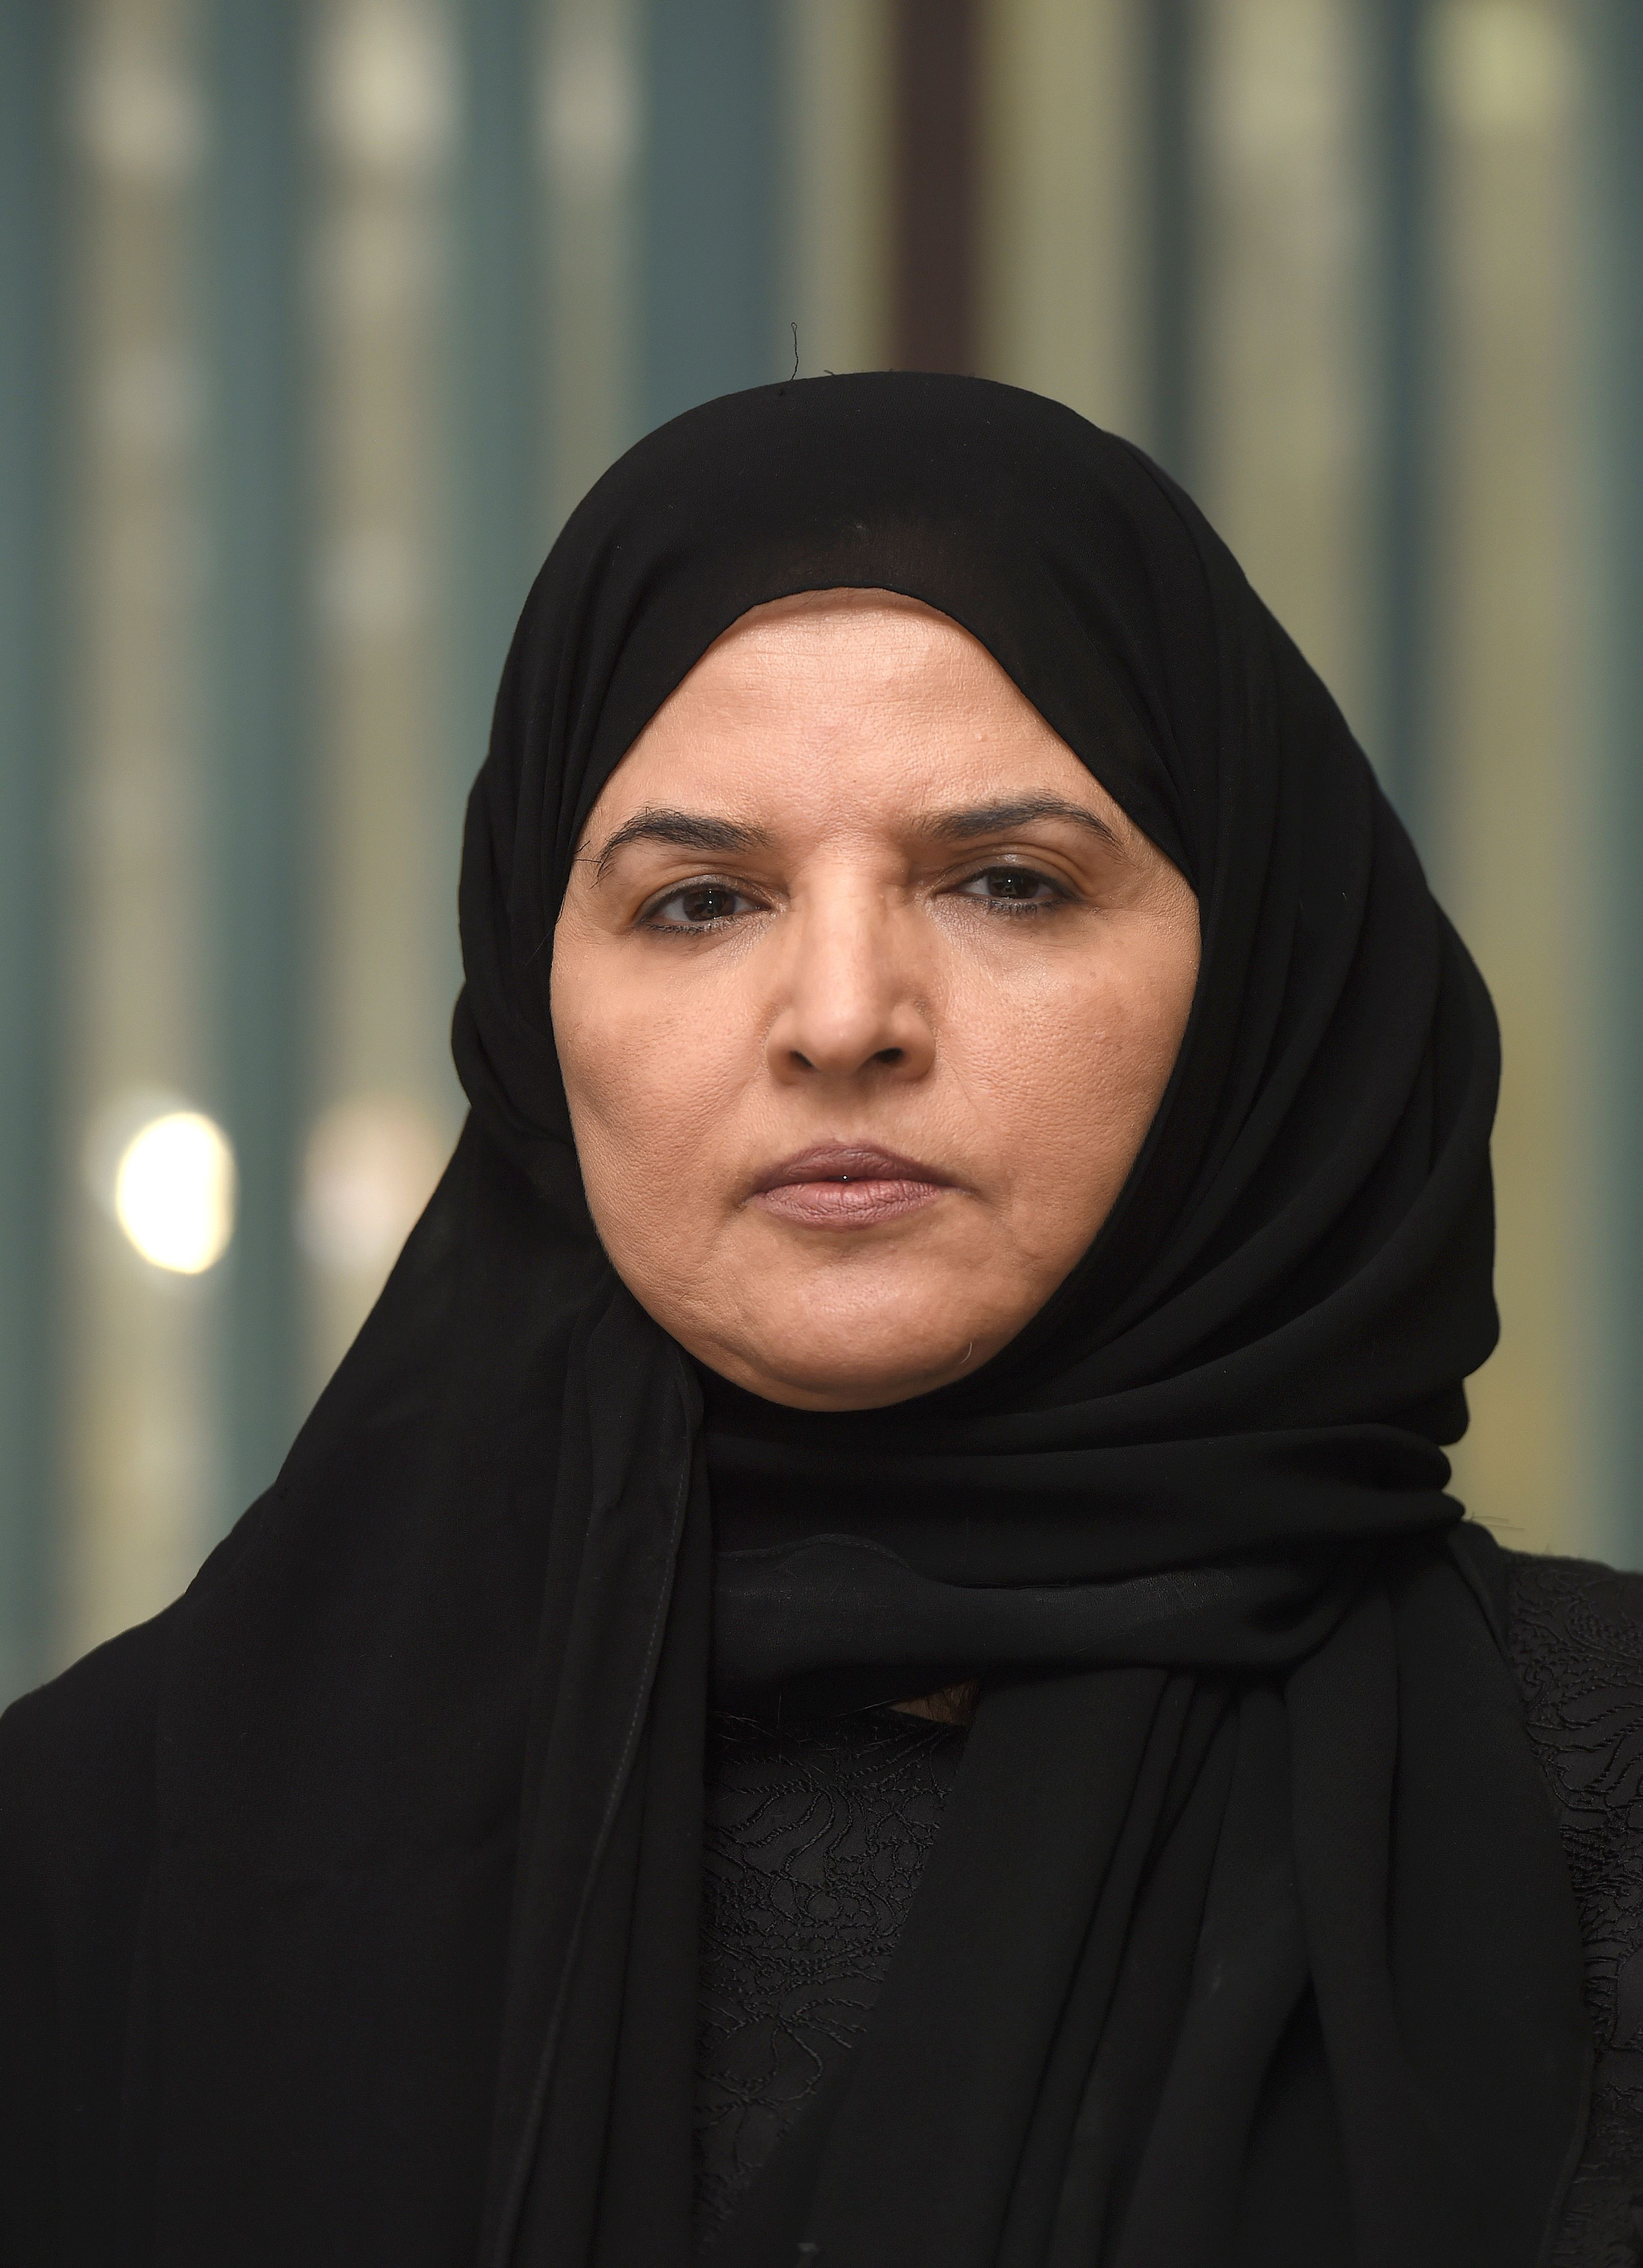 Saudi activist and campaigner Aziza al-Yousef looks on during an interview in the capital Riyadh, on September 27, 2016.